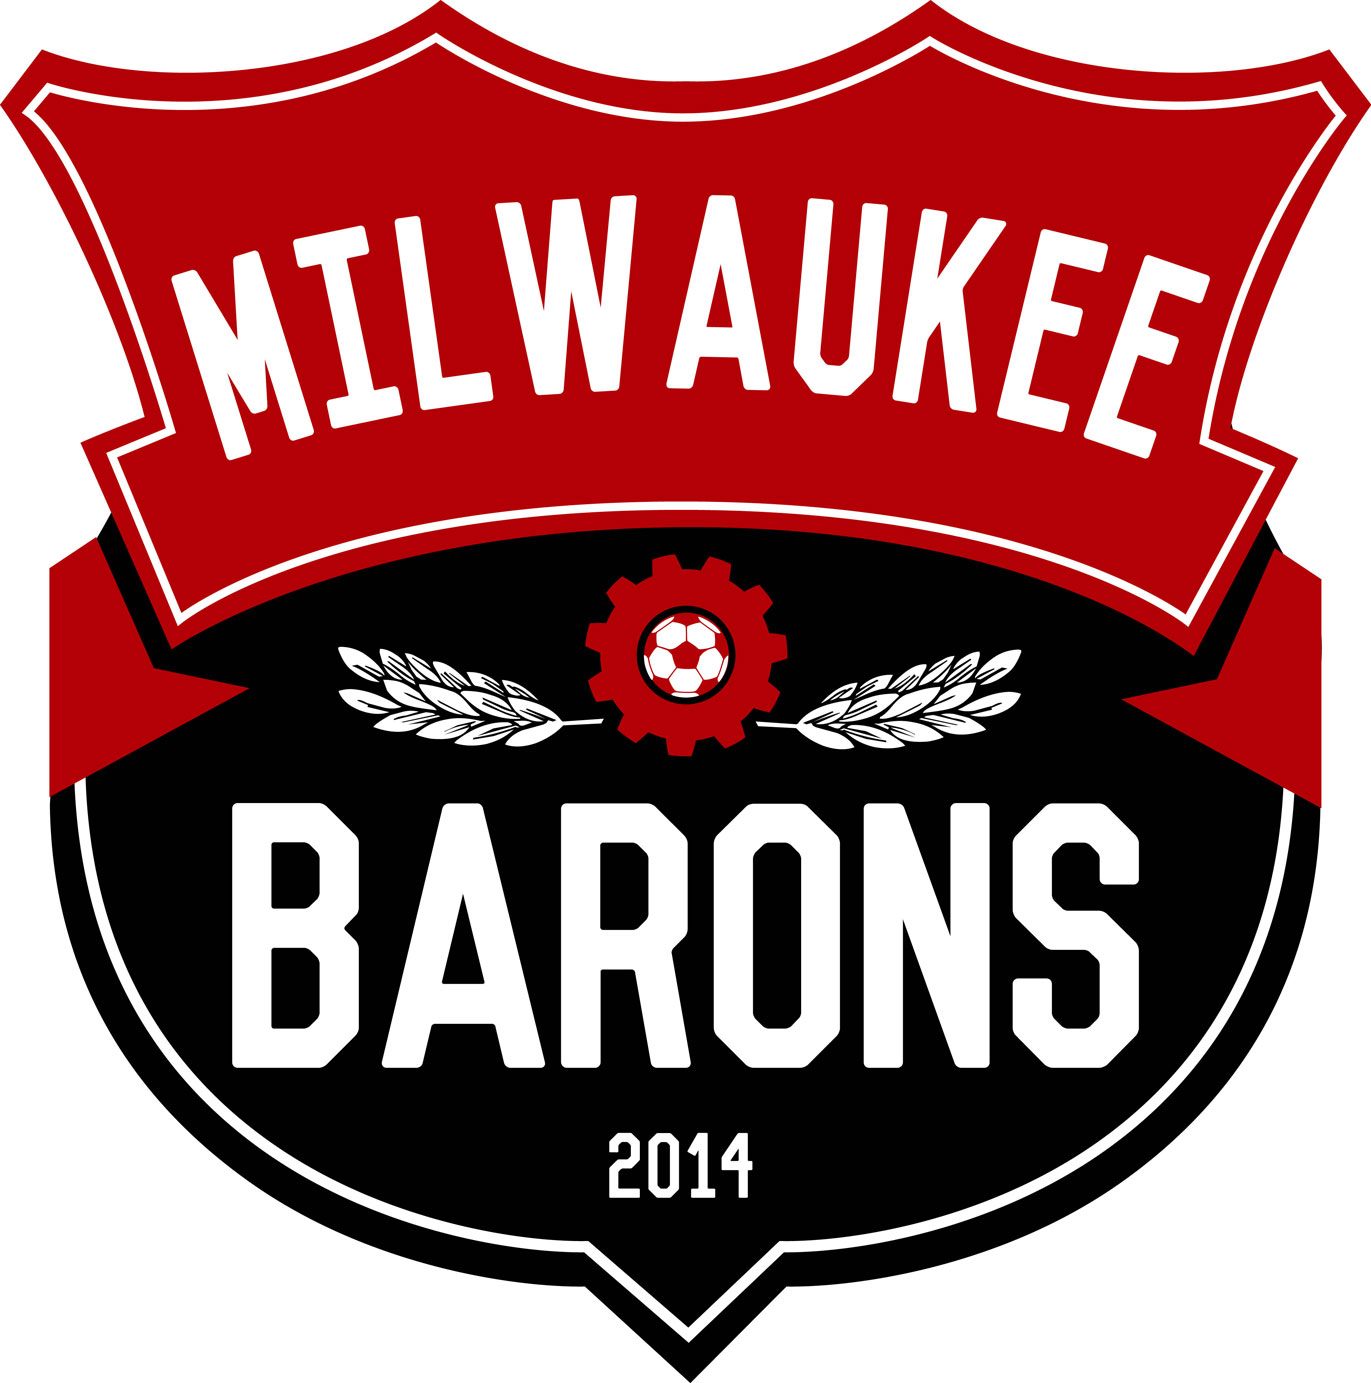 Milwaukee Barons